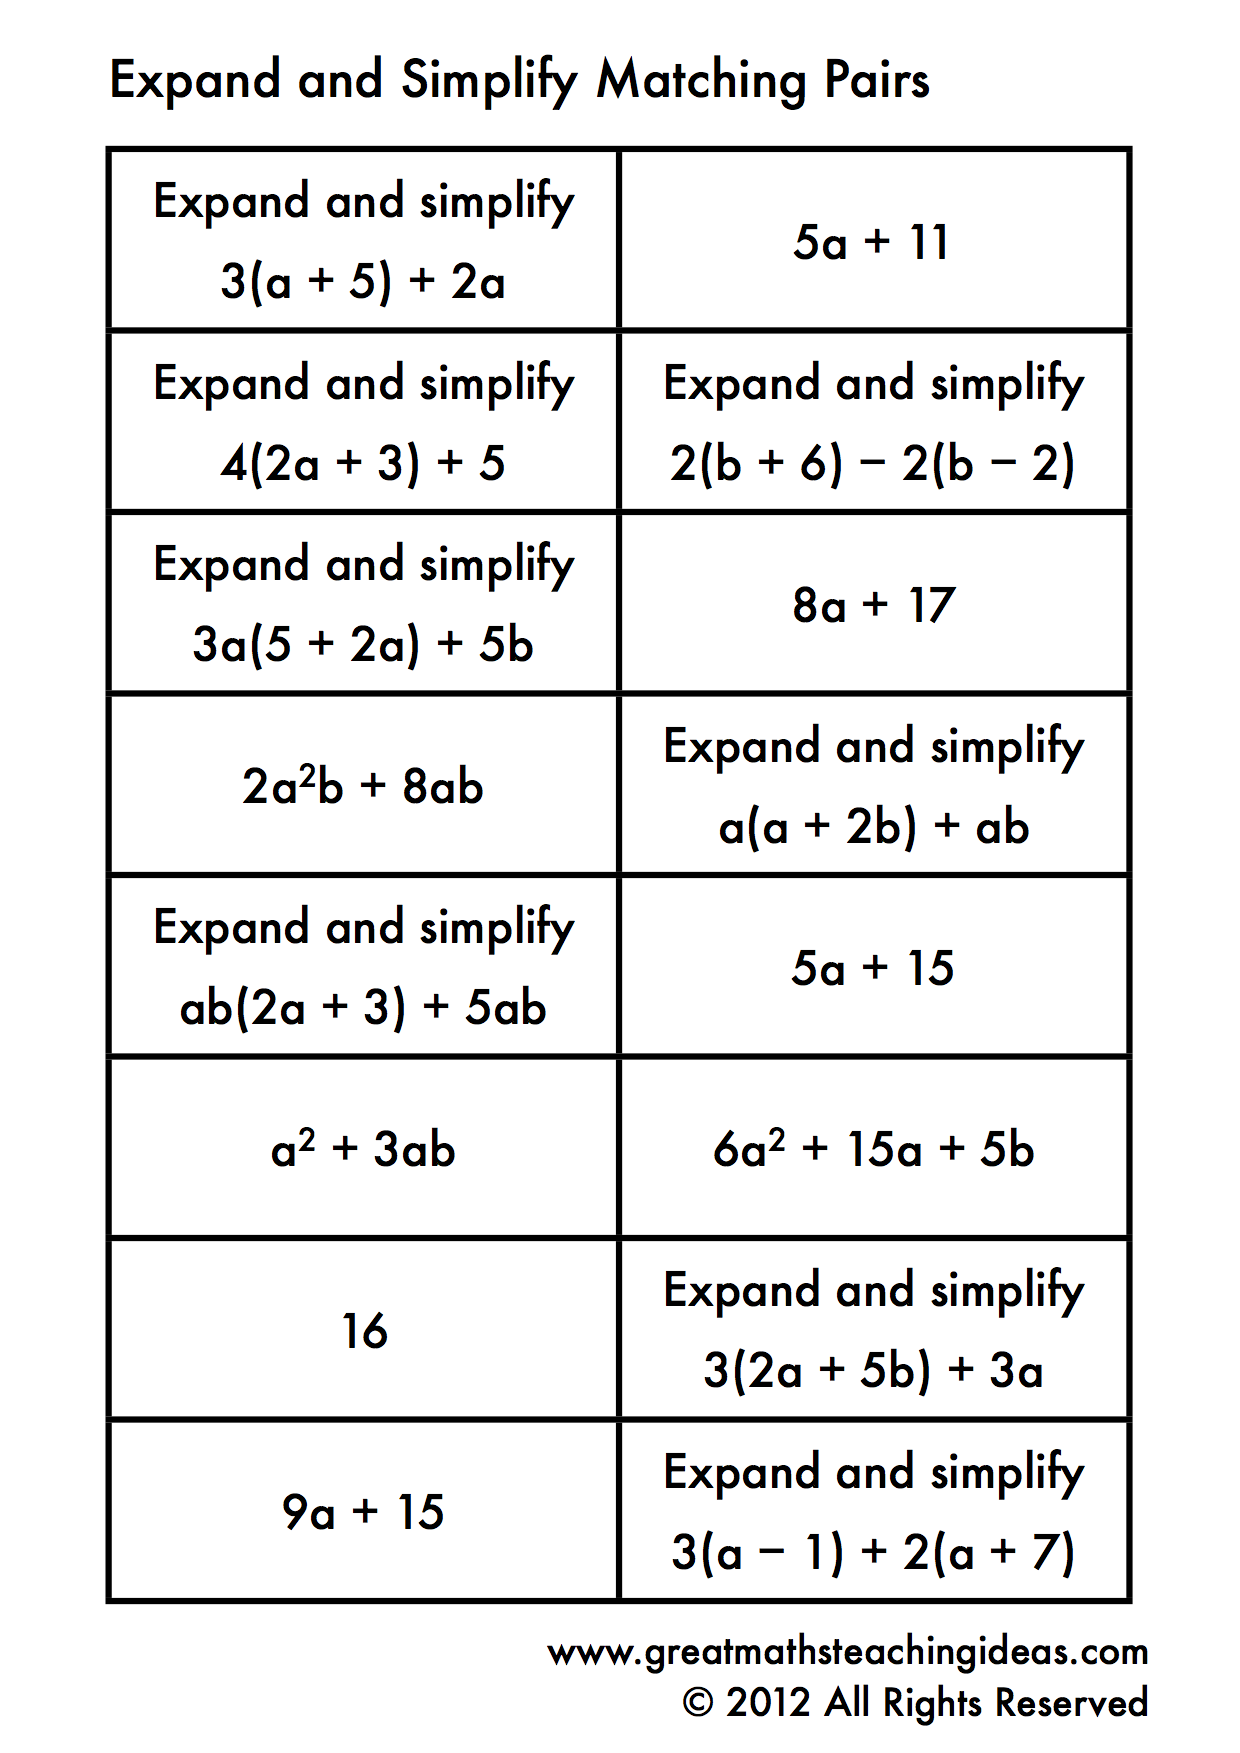 worksheet Writing And Solving Equations Worksheet expanding and simplifying single brackets matching pairs teaching distributive property